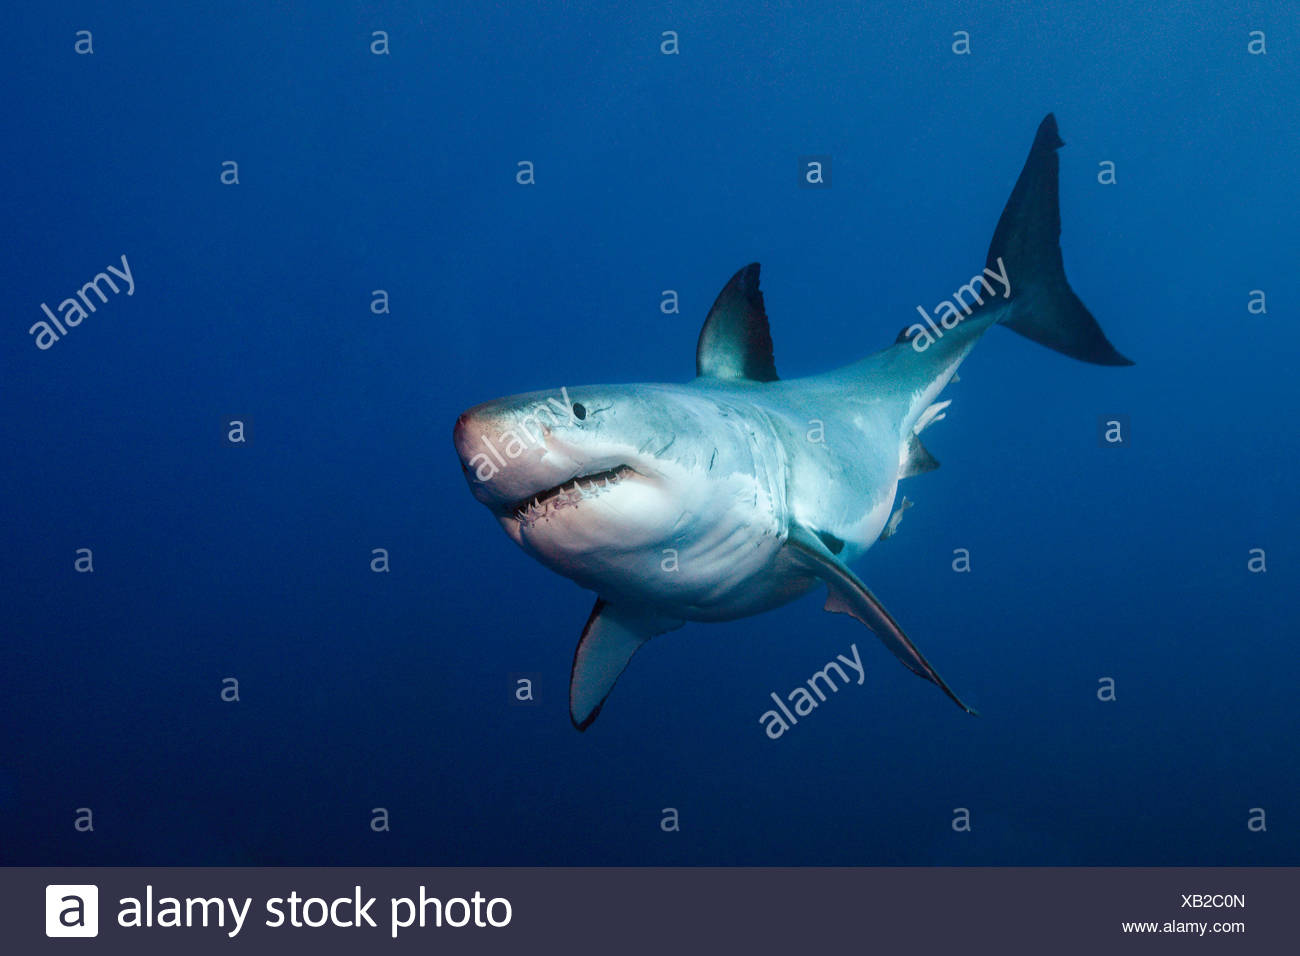 Great White Shark, Carcharodon carcharias, Neptune Islands, Australia - Stock Image